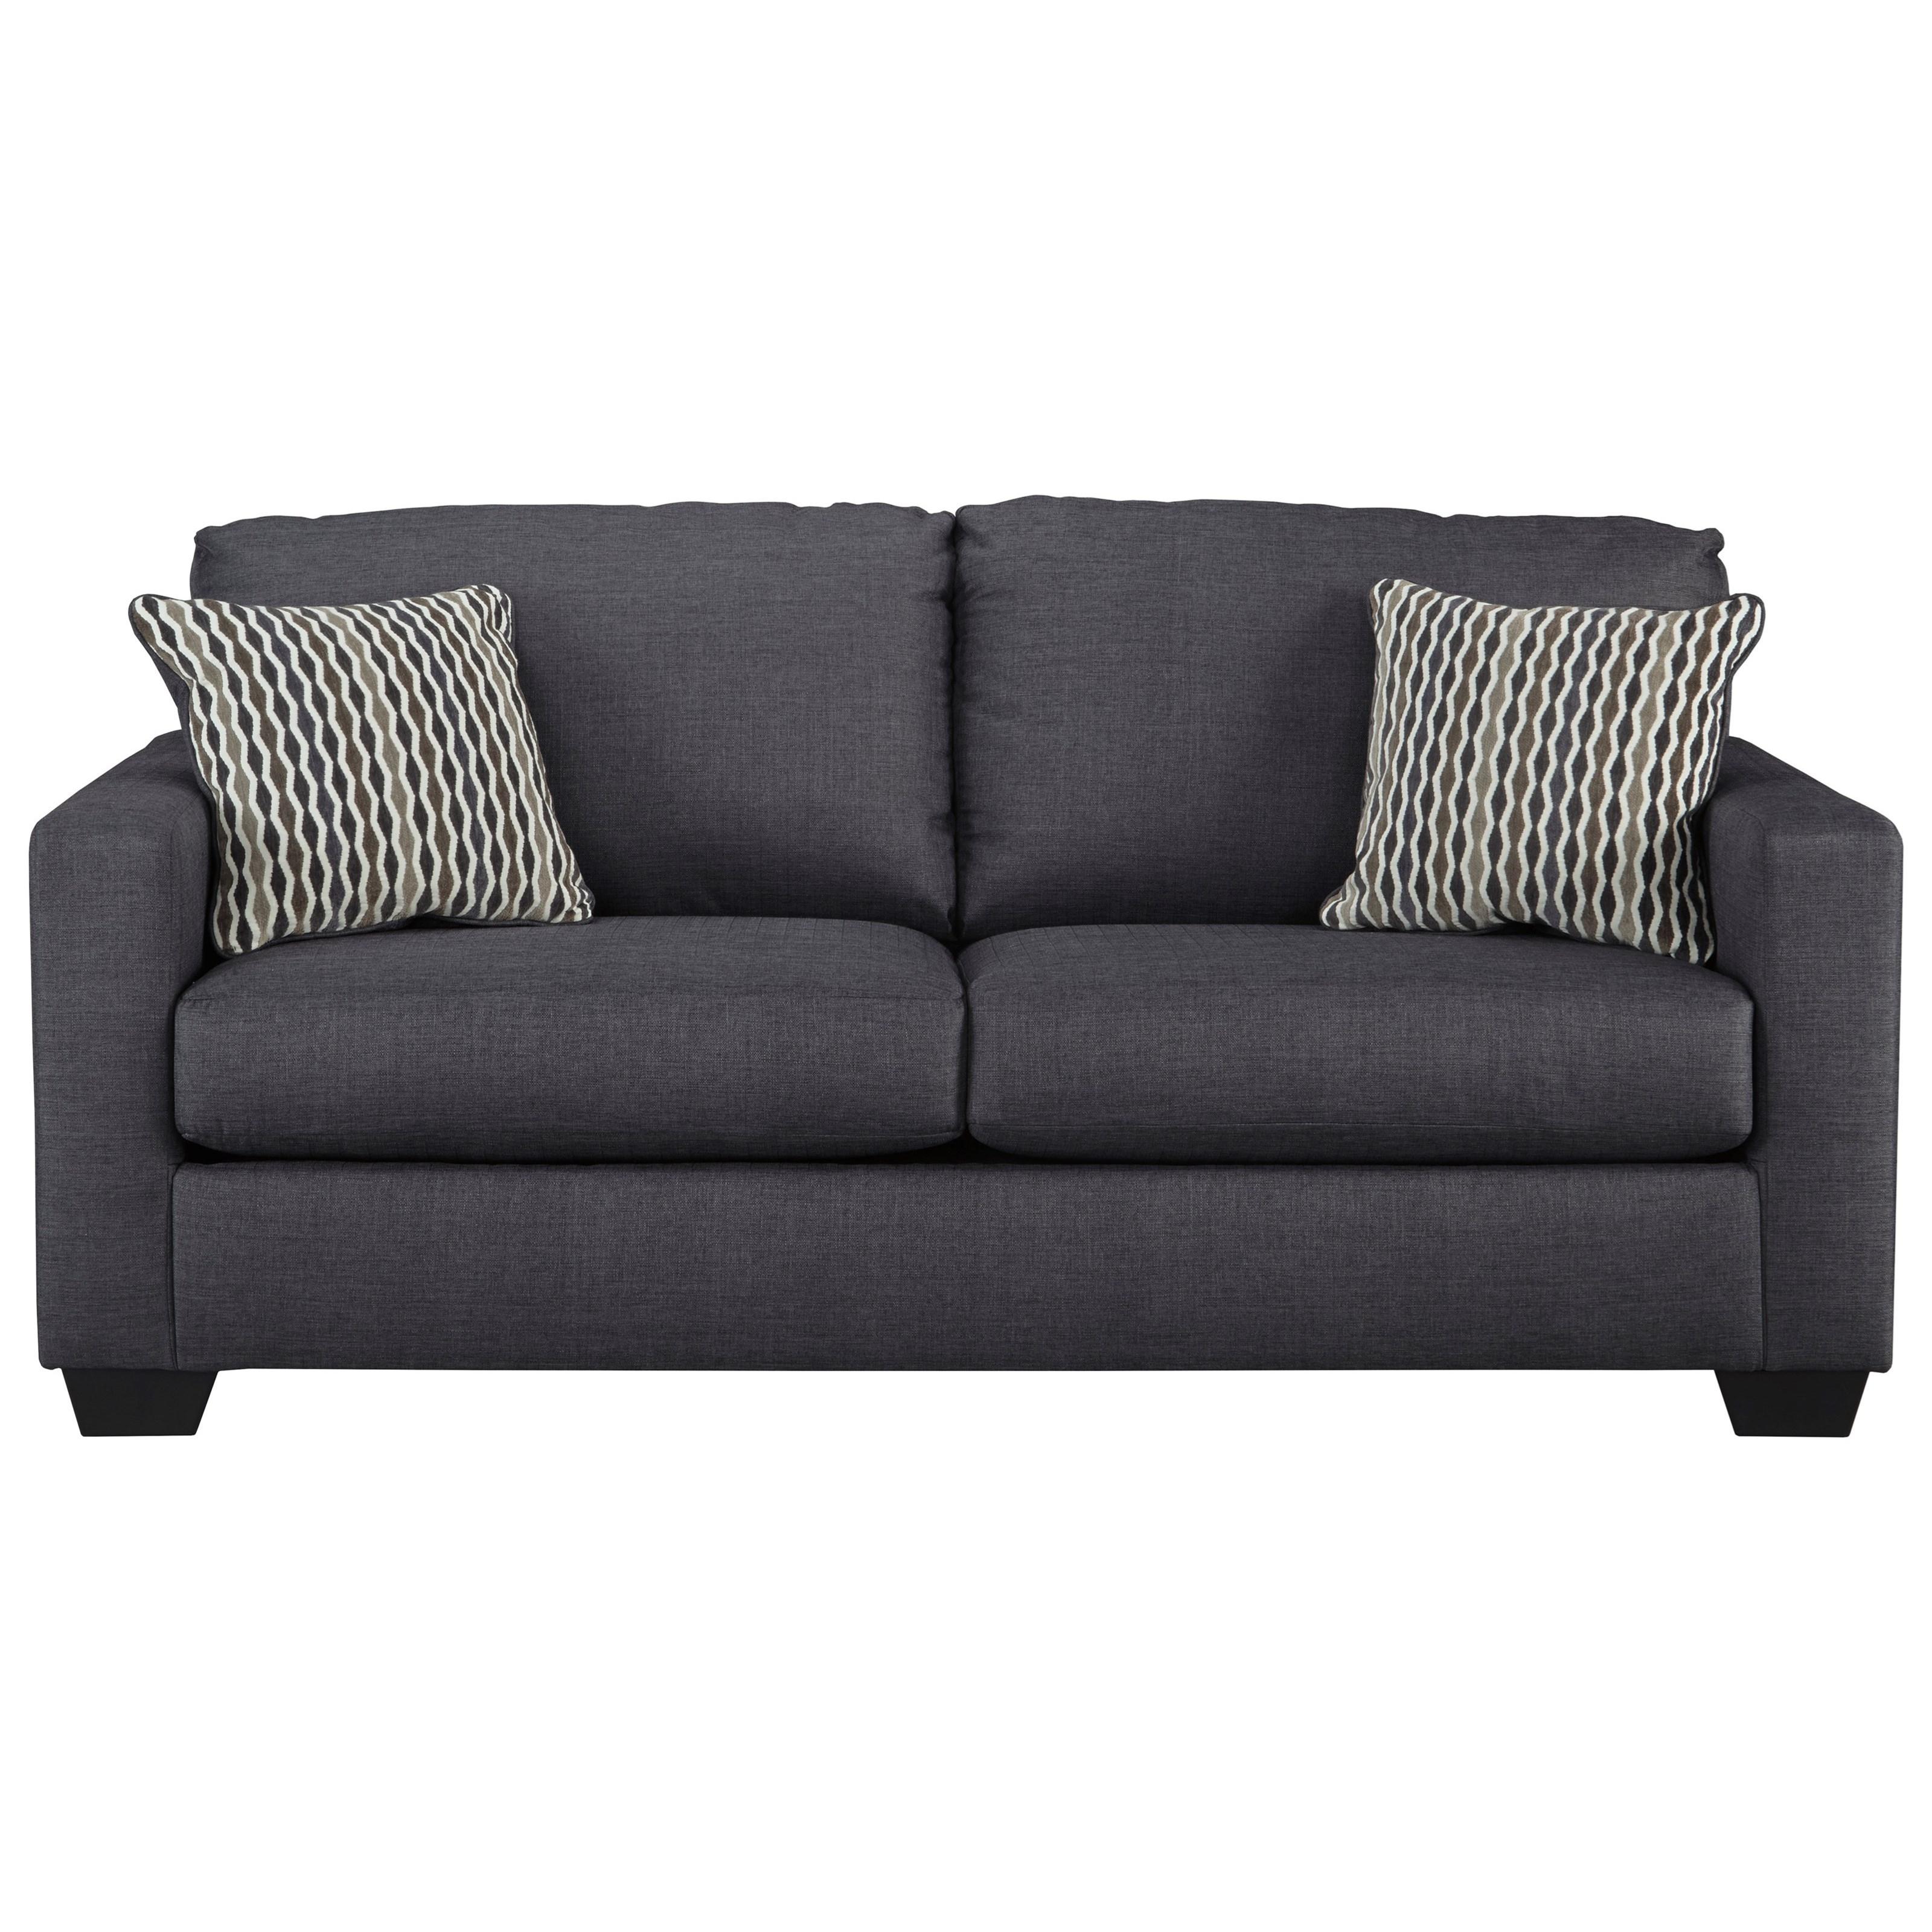 Bavello Contemporary Sofa with Track Arms by Benchcraft by Ashley at Royal  Furniture